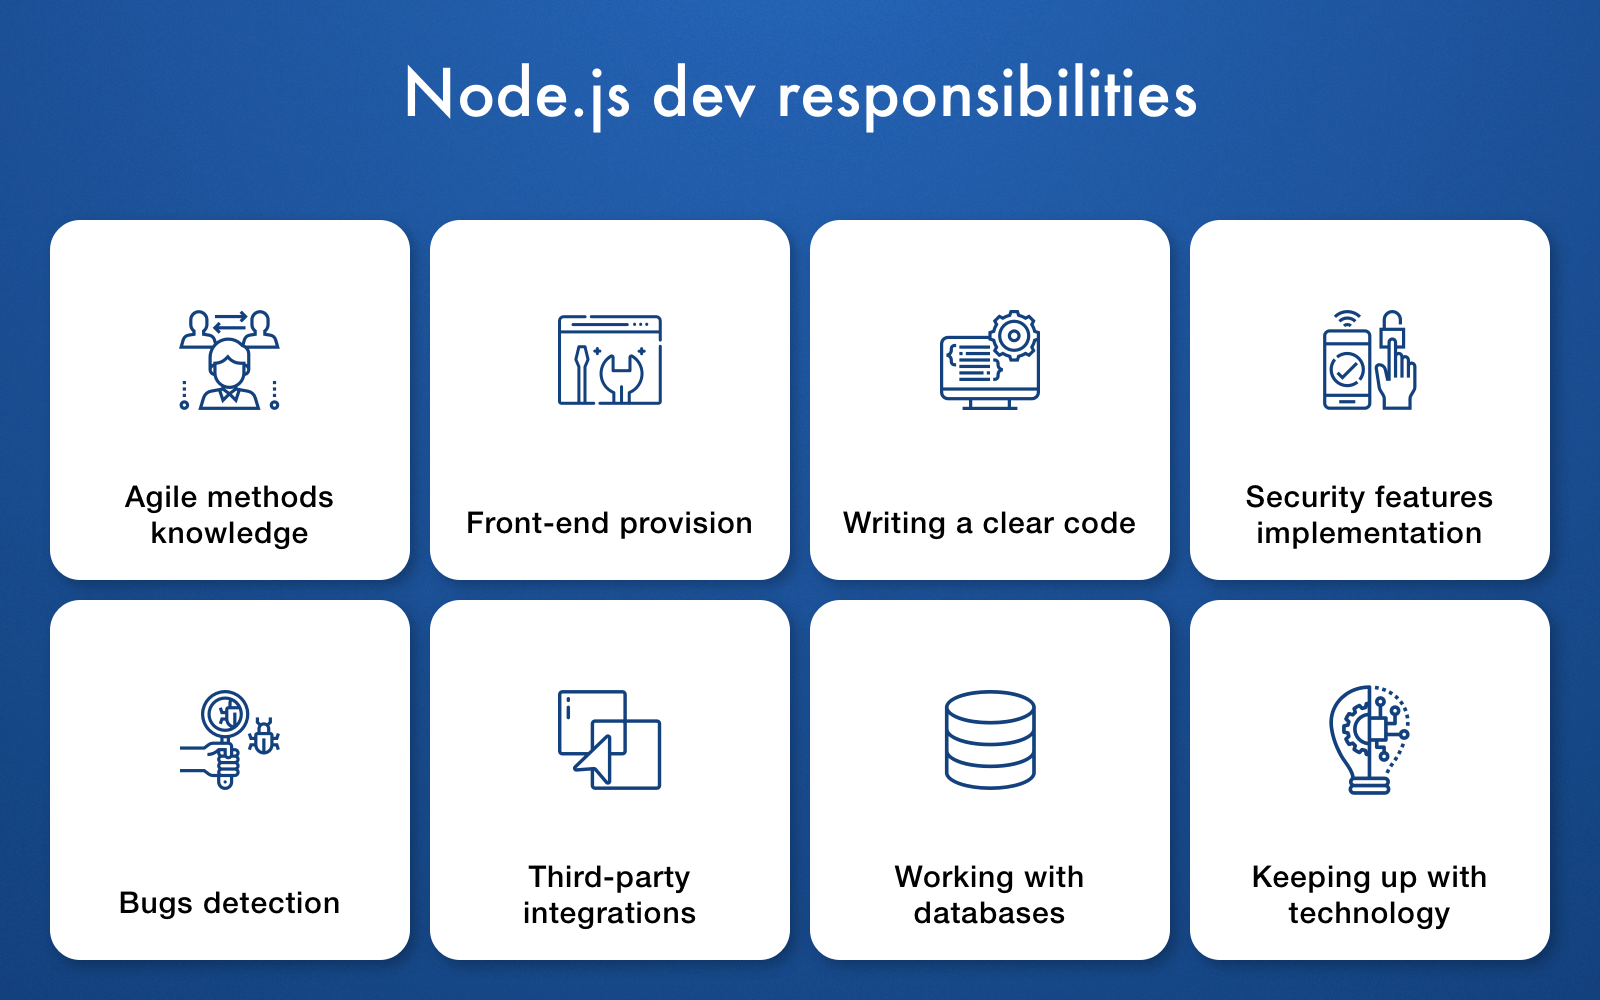 Node.js devs responsibilities